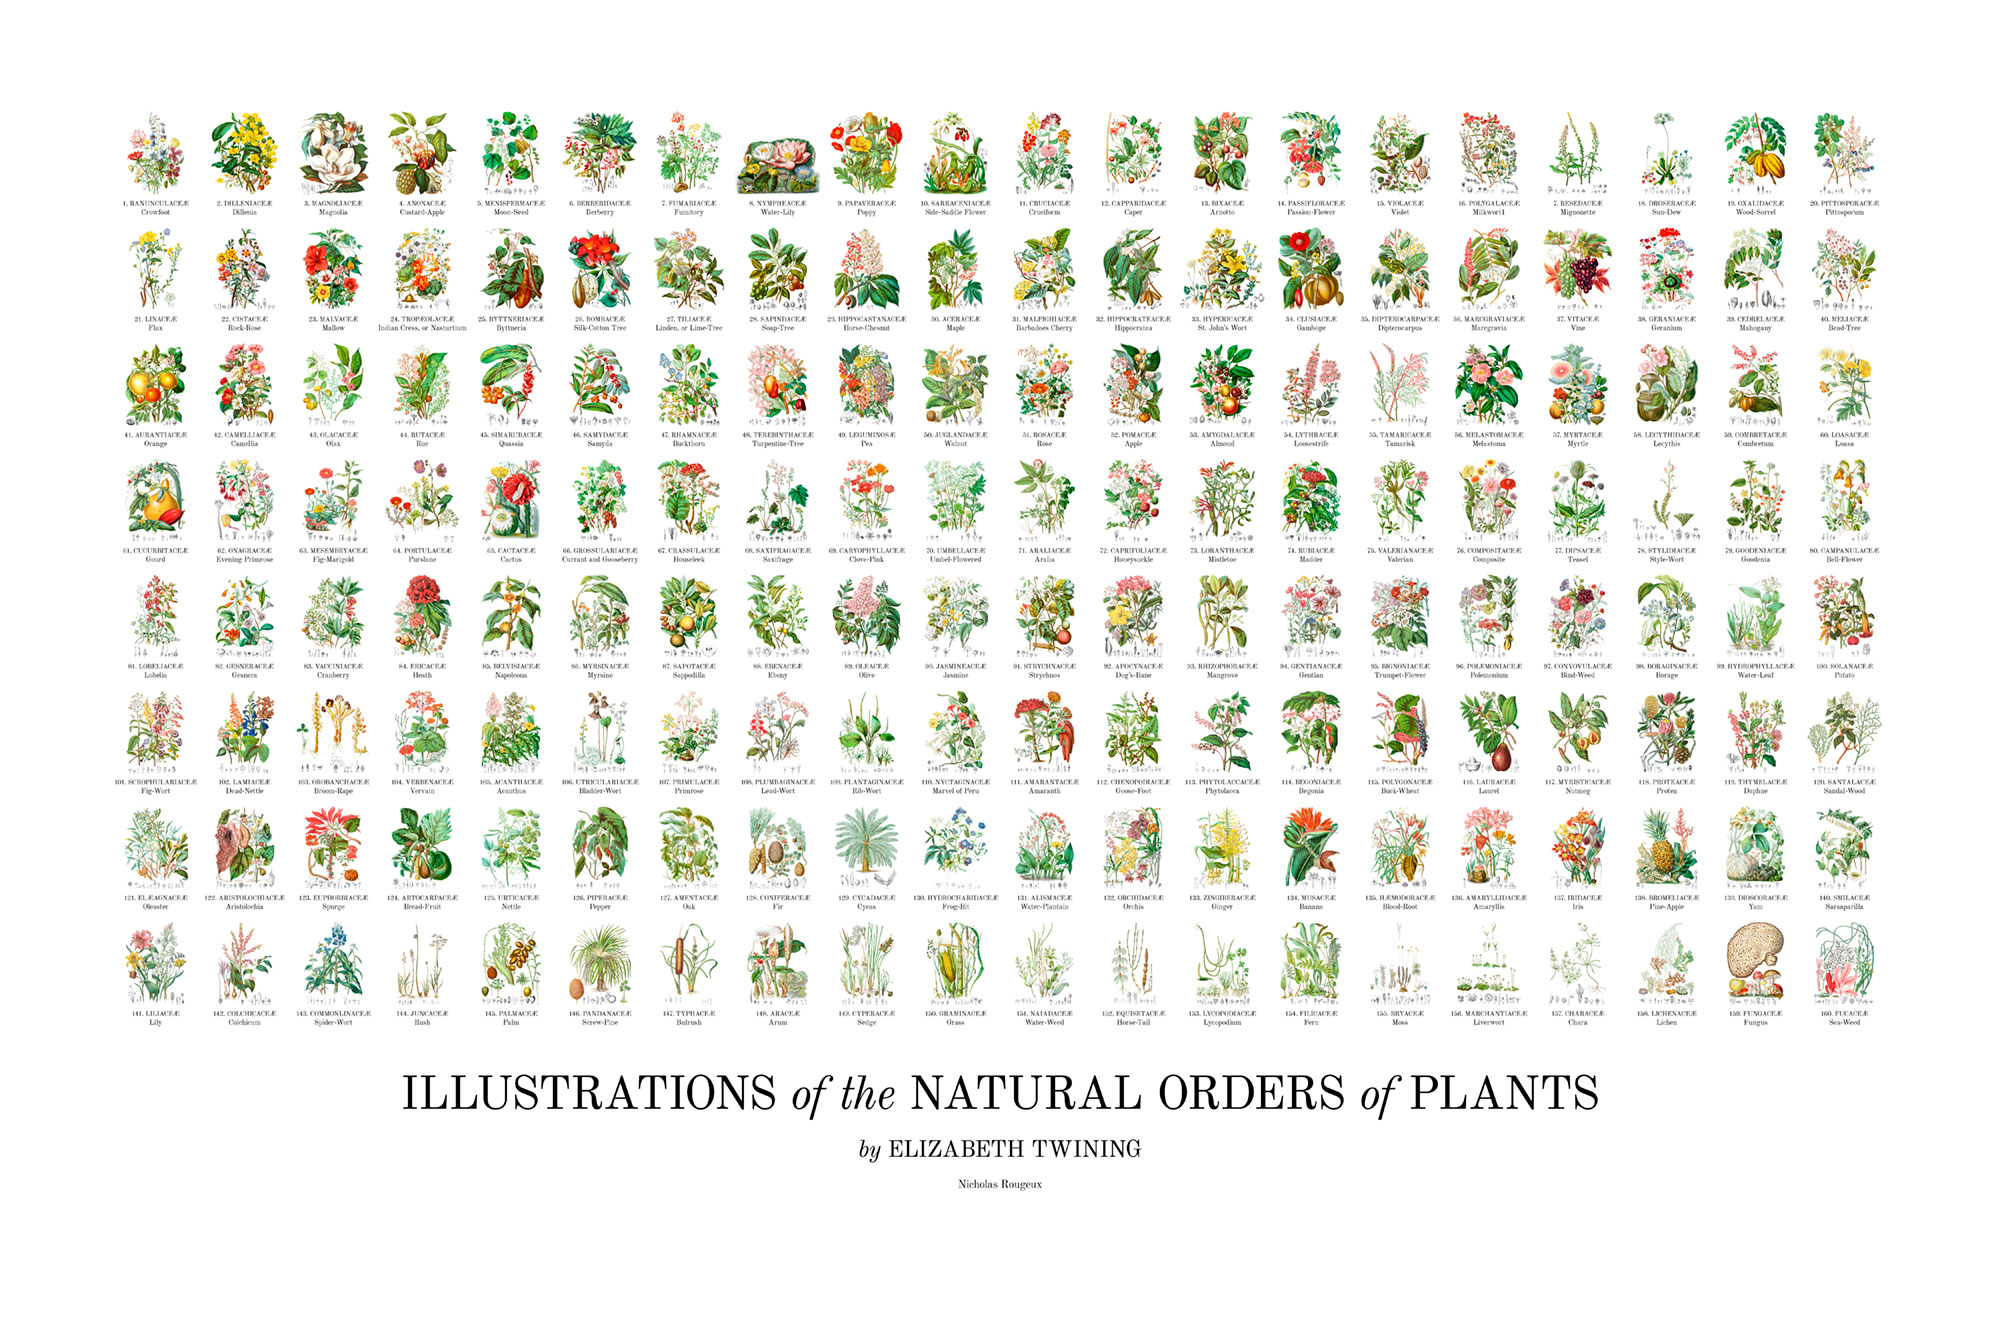 Poster of all 160 illustrations